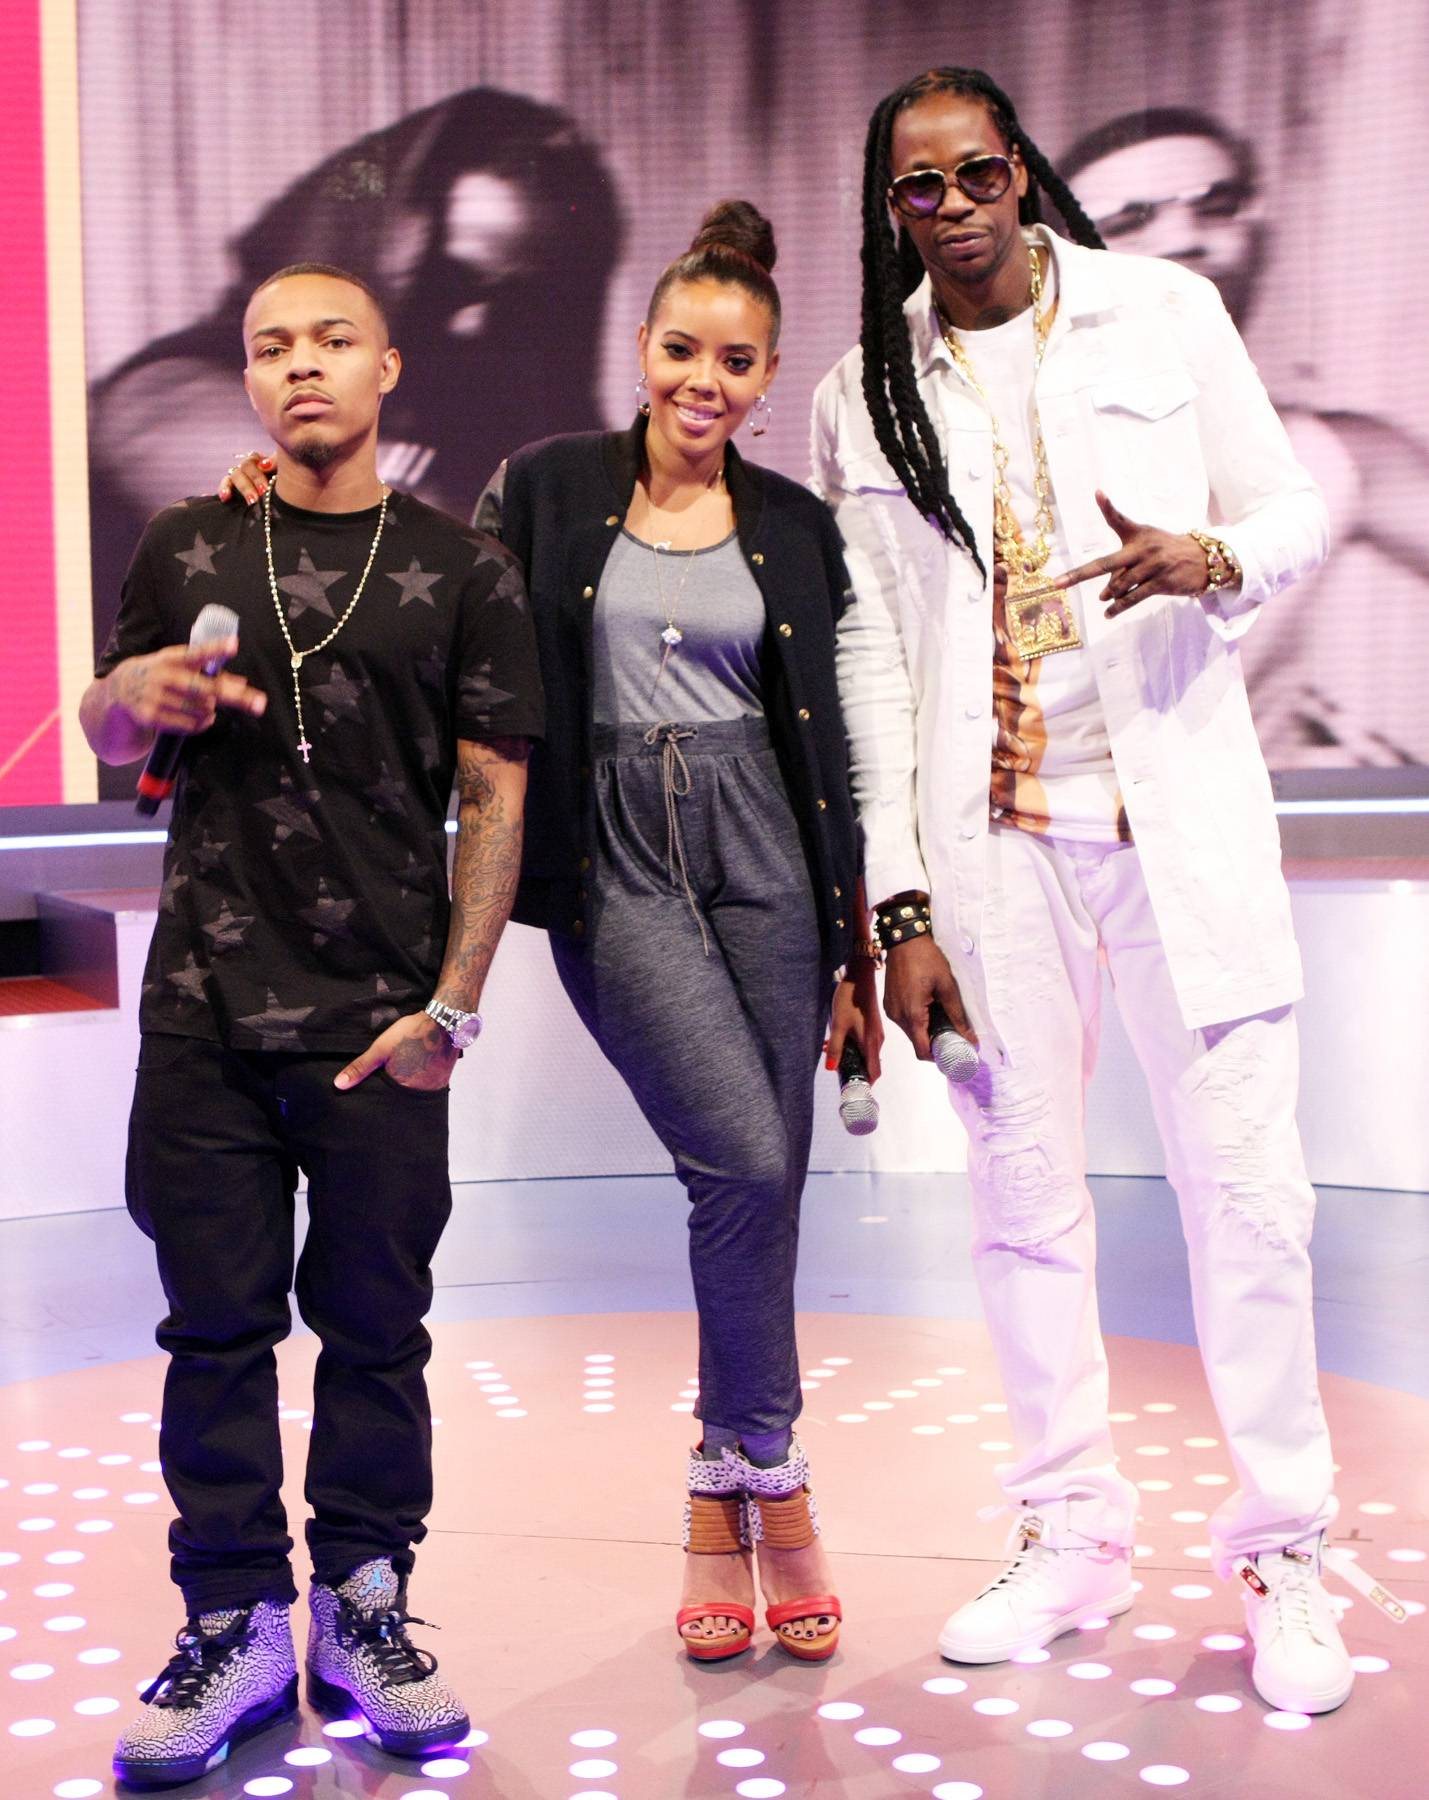 The Posse - 2 Chainz, Bow Wow, Angela Simmons coolin' on 106. (Photo: Bennett Raglin/BET/Getty Images for BET)